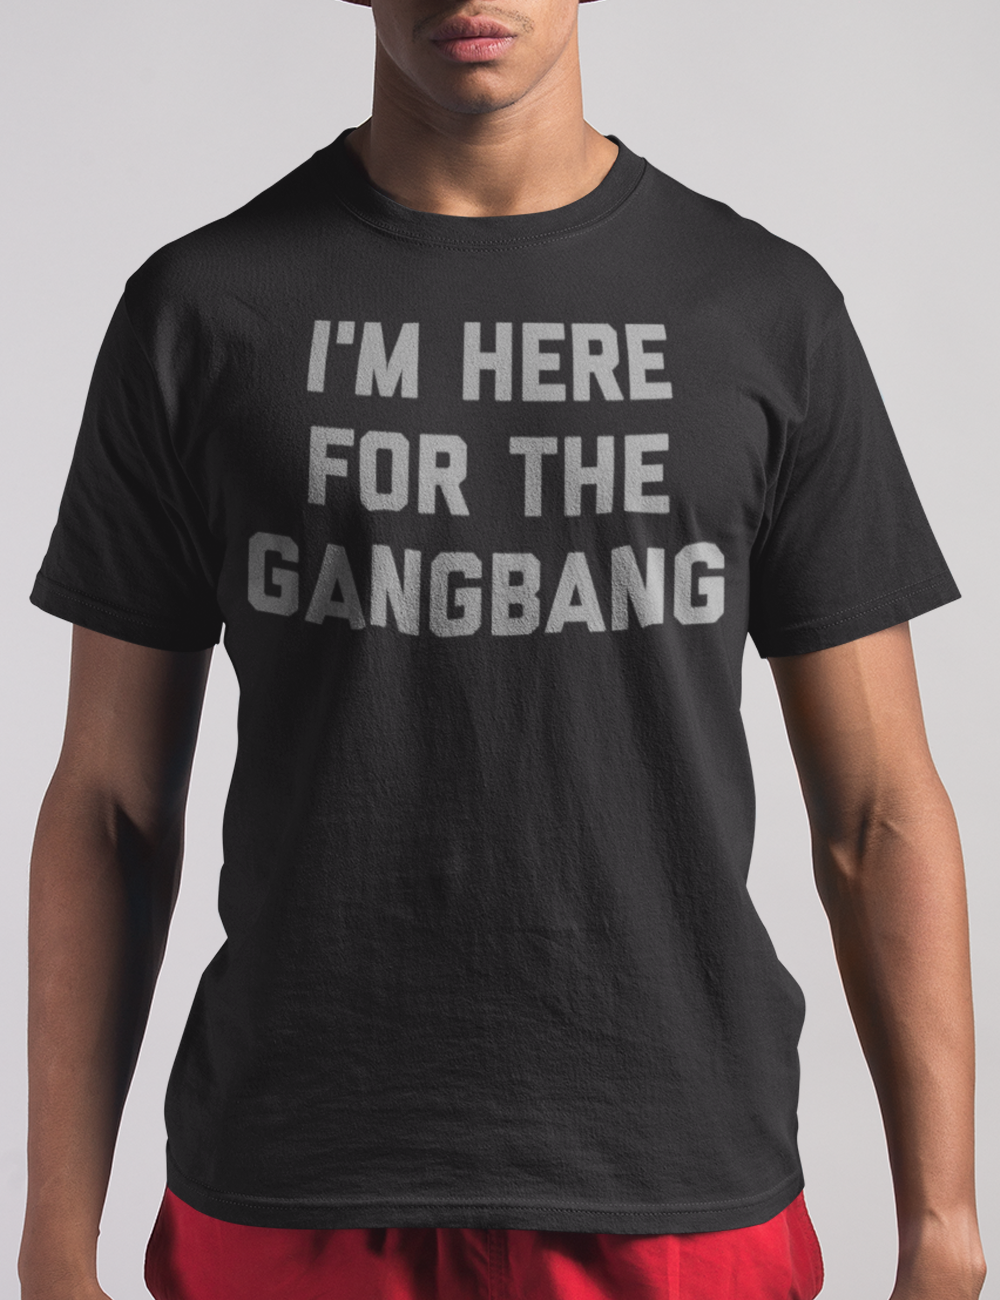 I'm Here For The Gangbang | T-Shirt